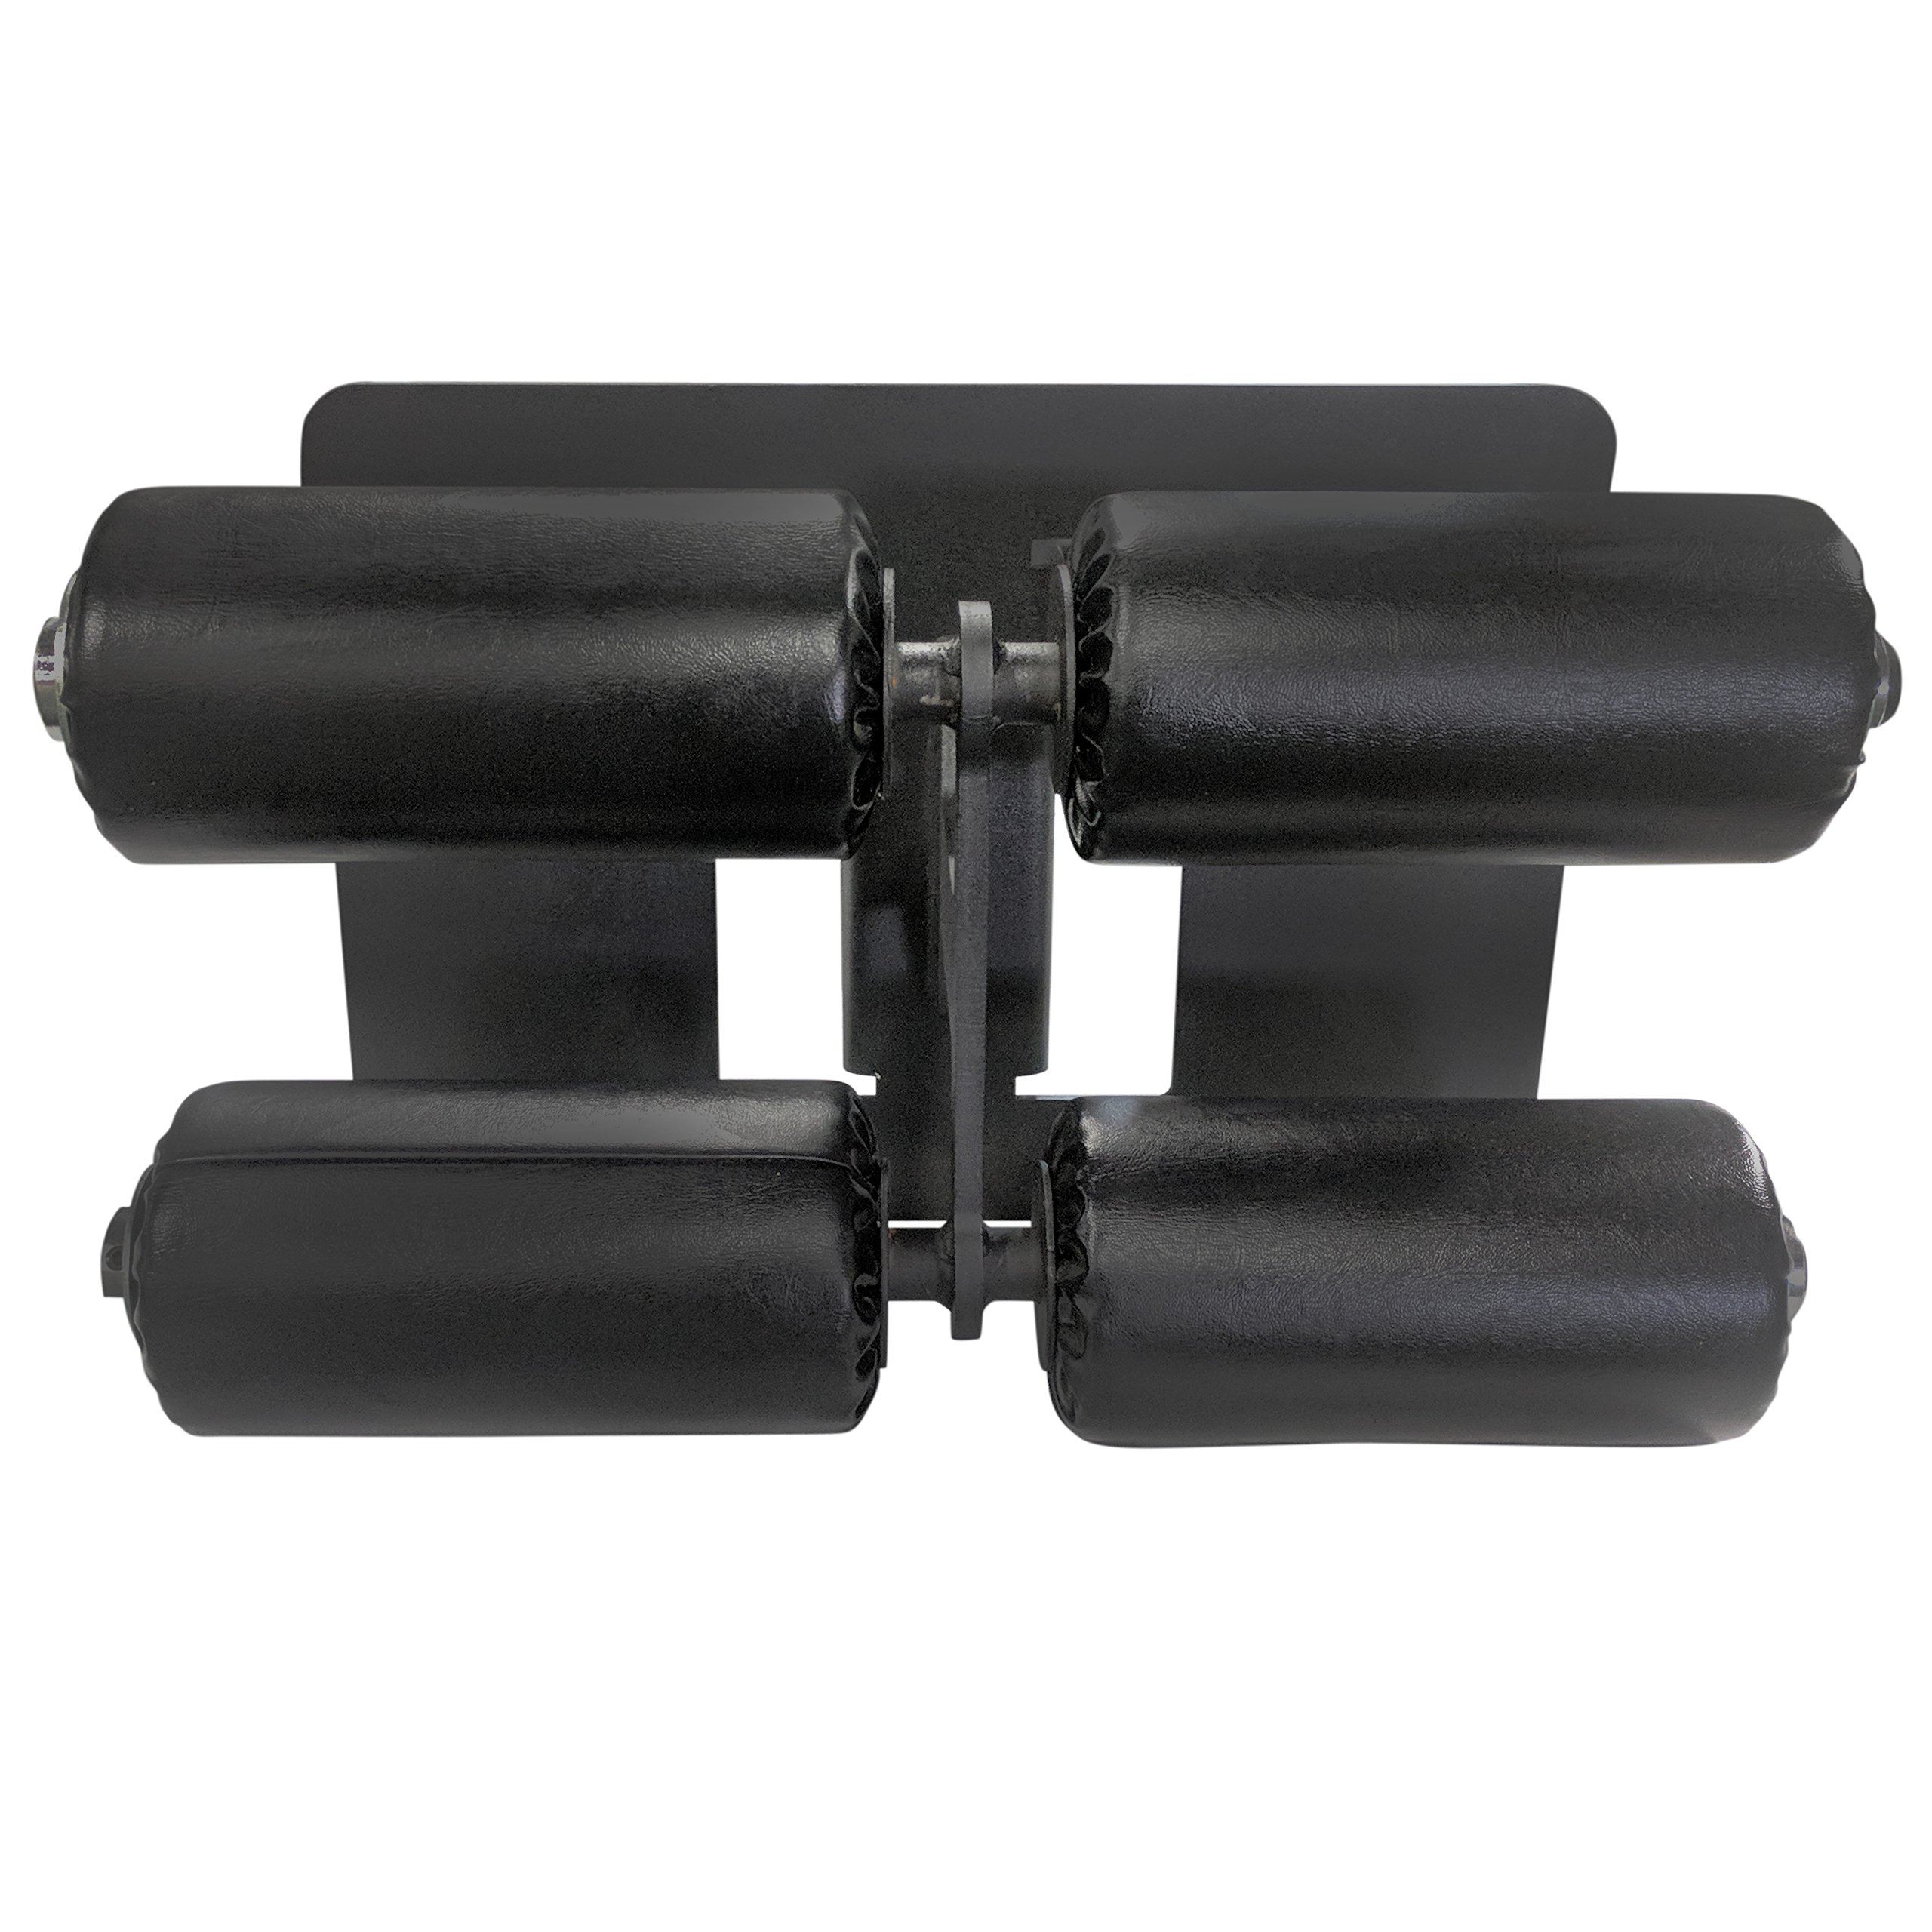 Titan DIY Foot Roller Attachment for T-3 Power Rack by Titan Fitness (Image #3)